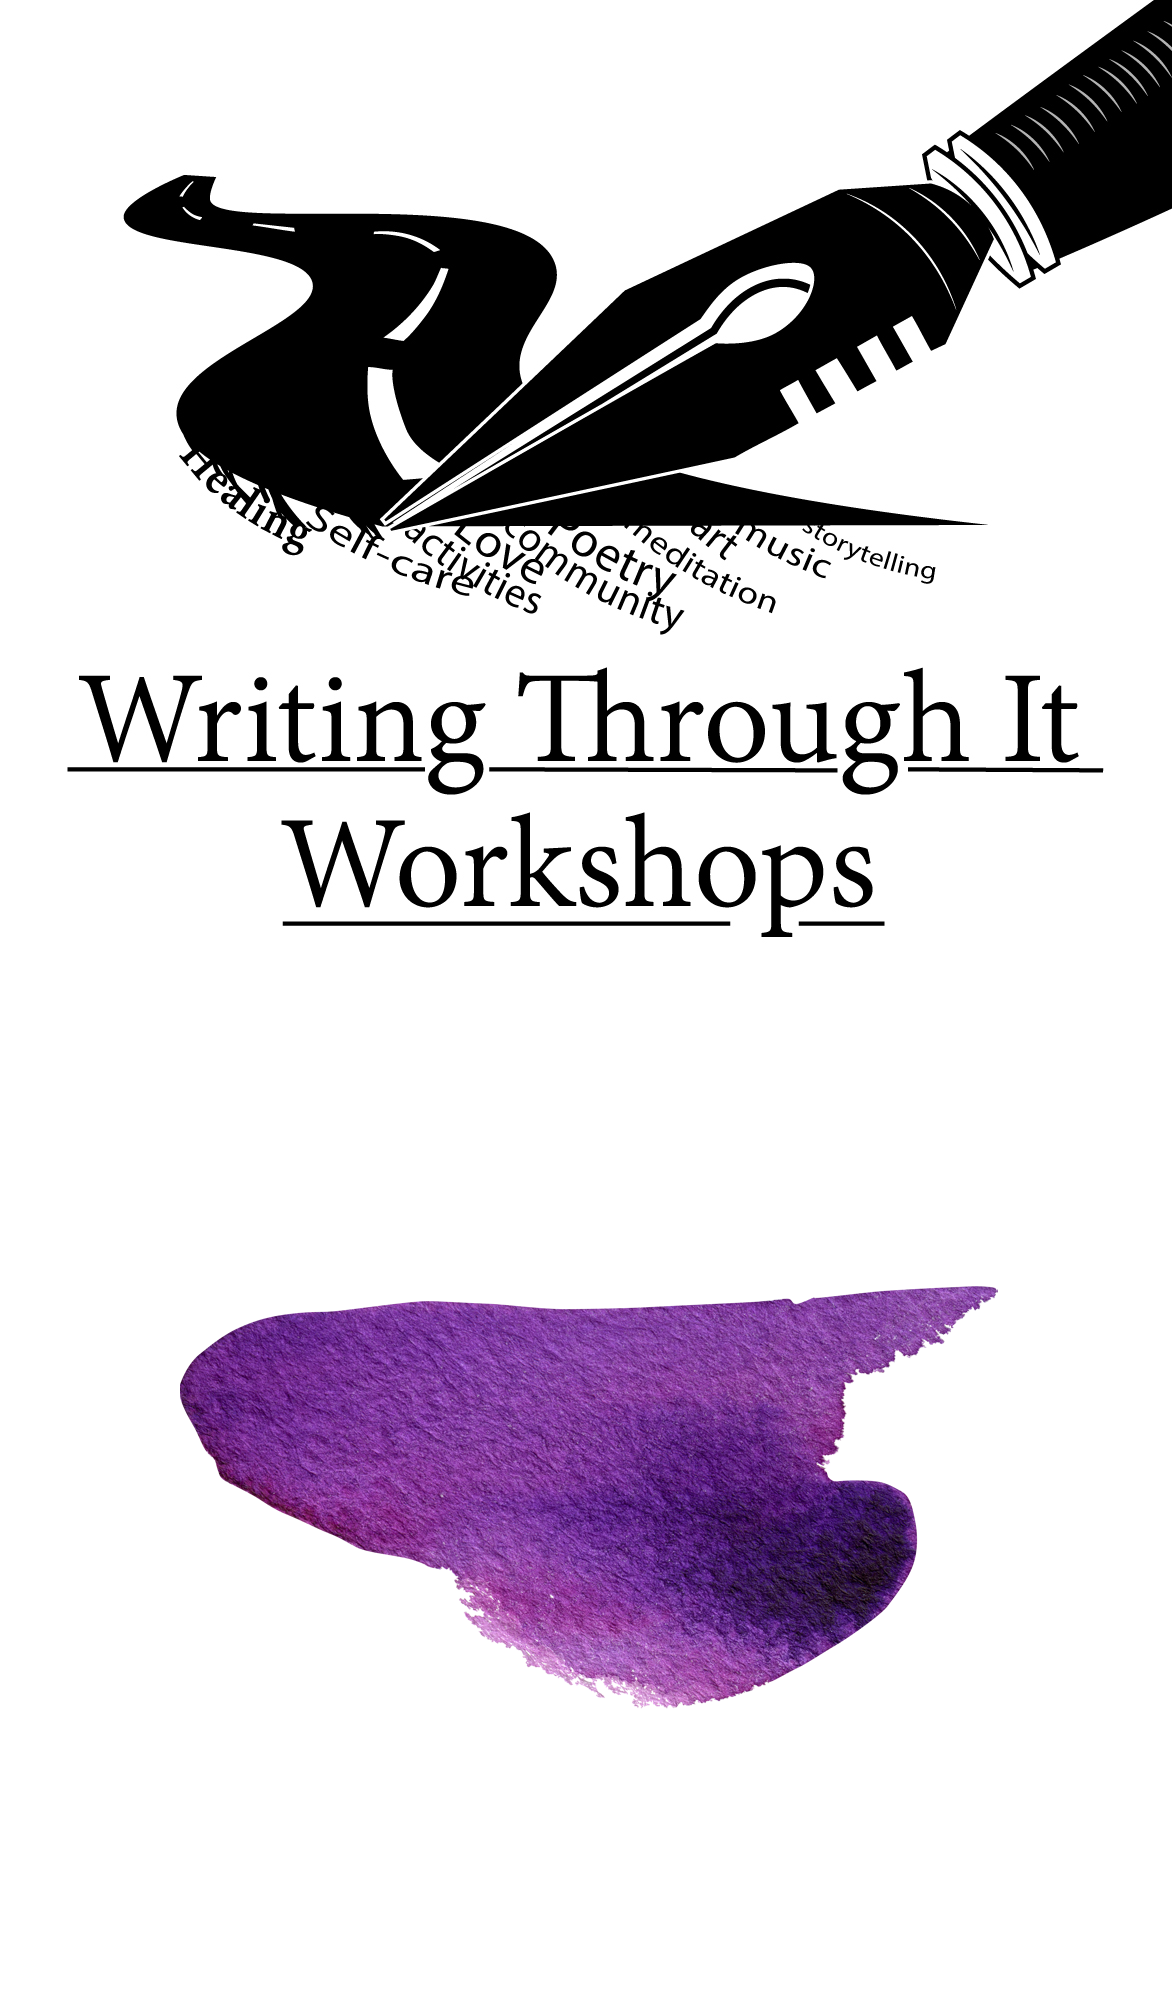 """Writing Through It Workshops - """"Writing Through It Workshops"""", the brainchild of Cherlnell Lane, are workshops based on """"Getting Through"""" a variety of topics by using Journaling and other writing techniques. Past topics include: sexual abuse, pain experienced from Lupus or Fibromyalgia and the everyday trauma of being Black in America but the possibilities are endless. Each WTI Workshop is handcrafted to fit the topic and in addition to writing may include: games, meditations, conversations, artwork, etc. Cherlnell teaches how to use words as a cleansing agent, a healing balm, the medicine of laughter or a call to arms. WTI Workshops is an intimate setting where students will learn, experience, and share with each other.If you are interested in having Cherlnell teach a workshop for your organization please fill out the form below."""